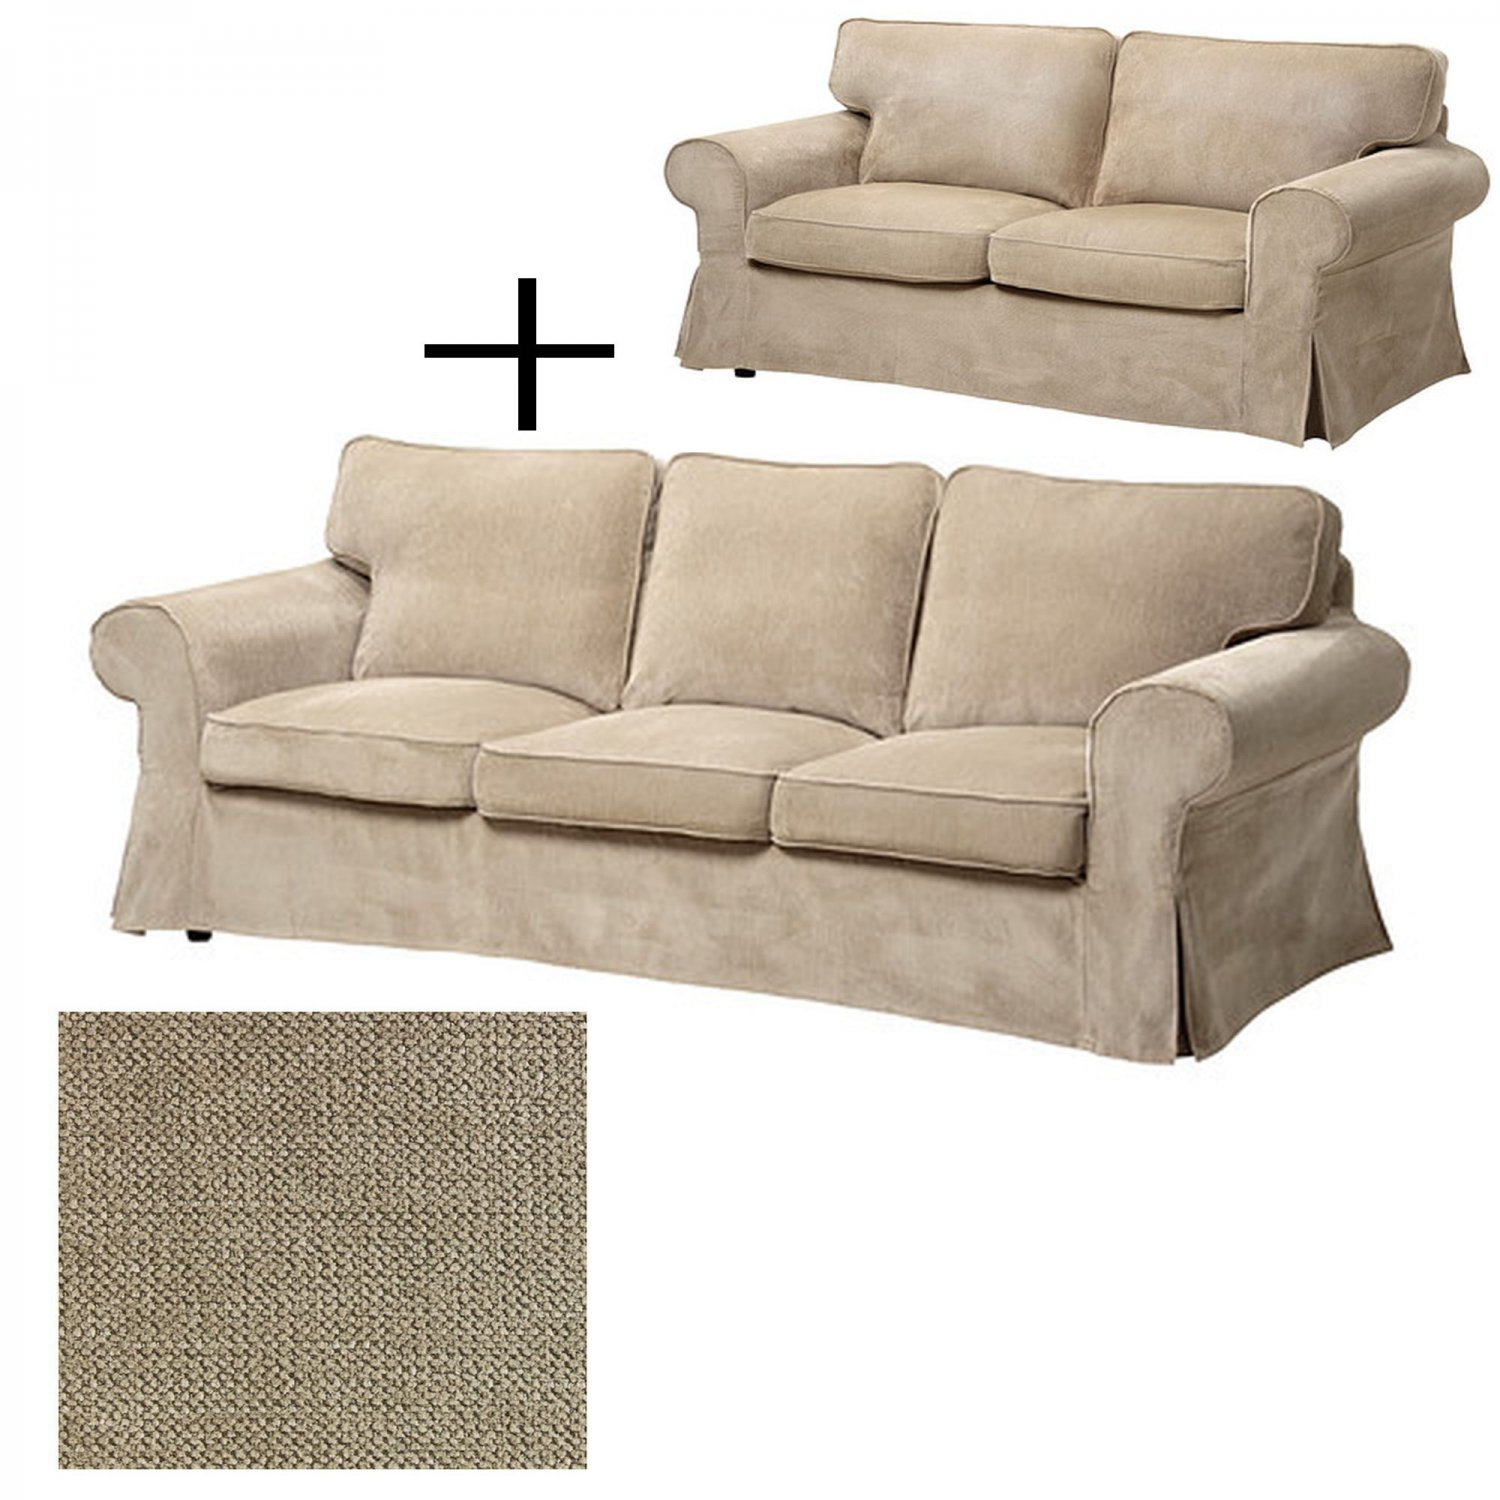 Ikea Ektorp 3 And 2 Seat Sofa Slipcovers Sofa Loveseat